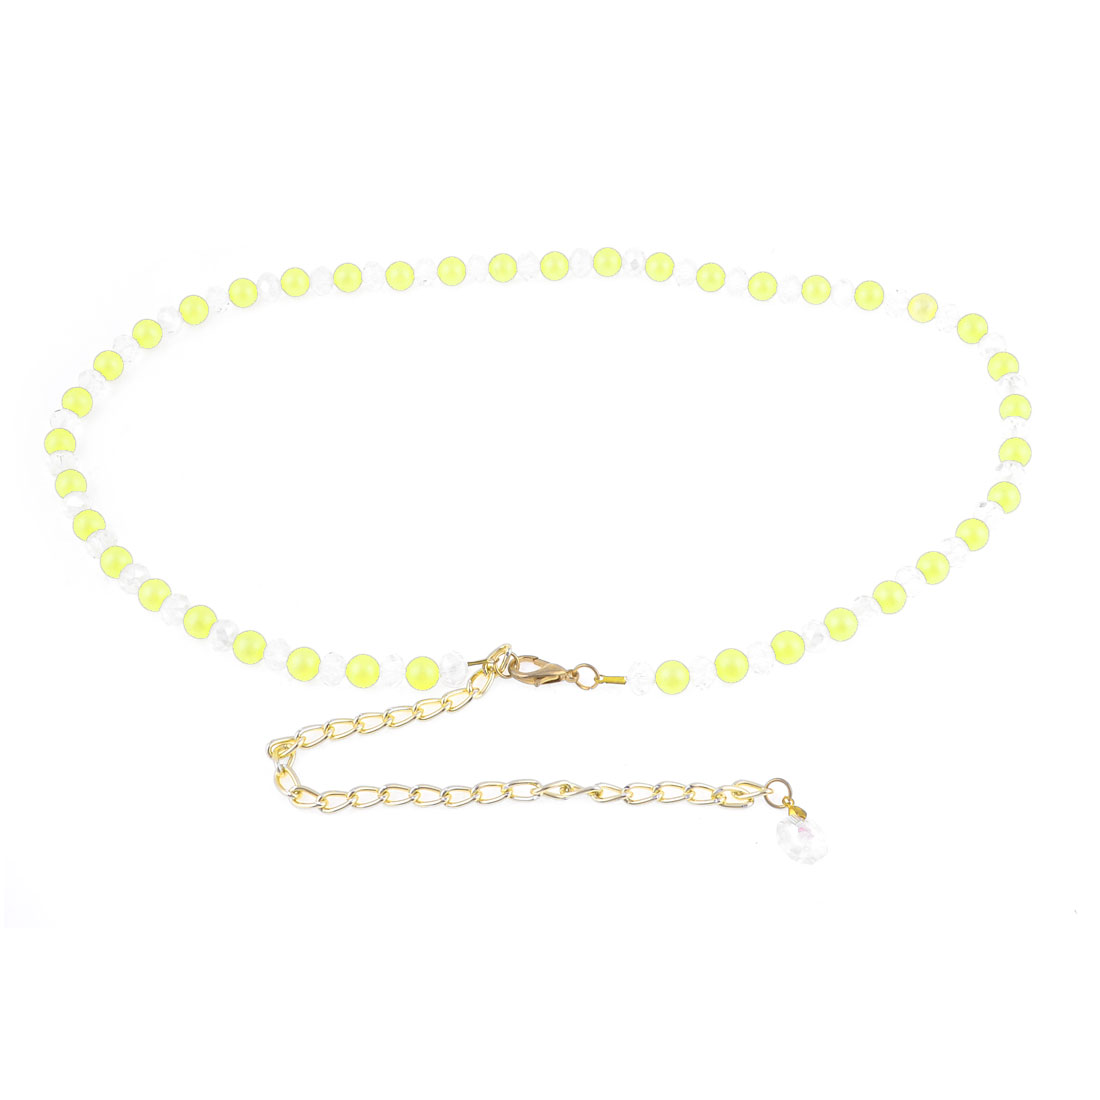 Lobster Clasp Plastic Beads Decoration Adjustable Chain Waist Belt Band Yellow